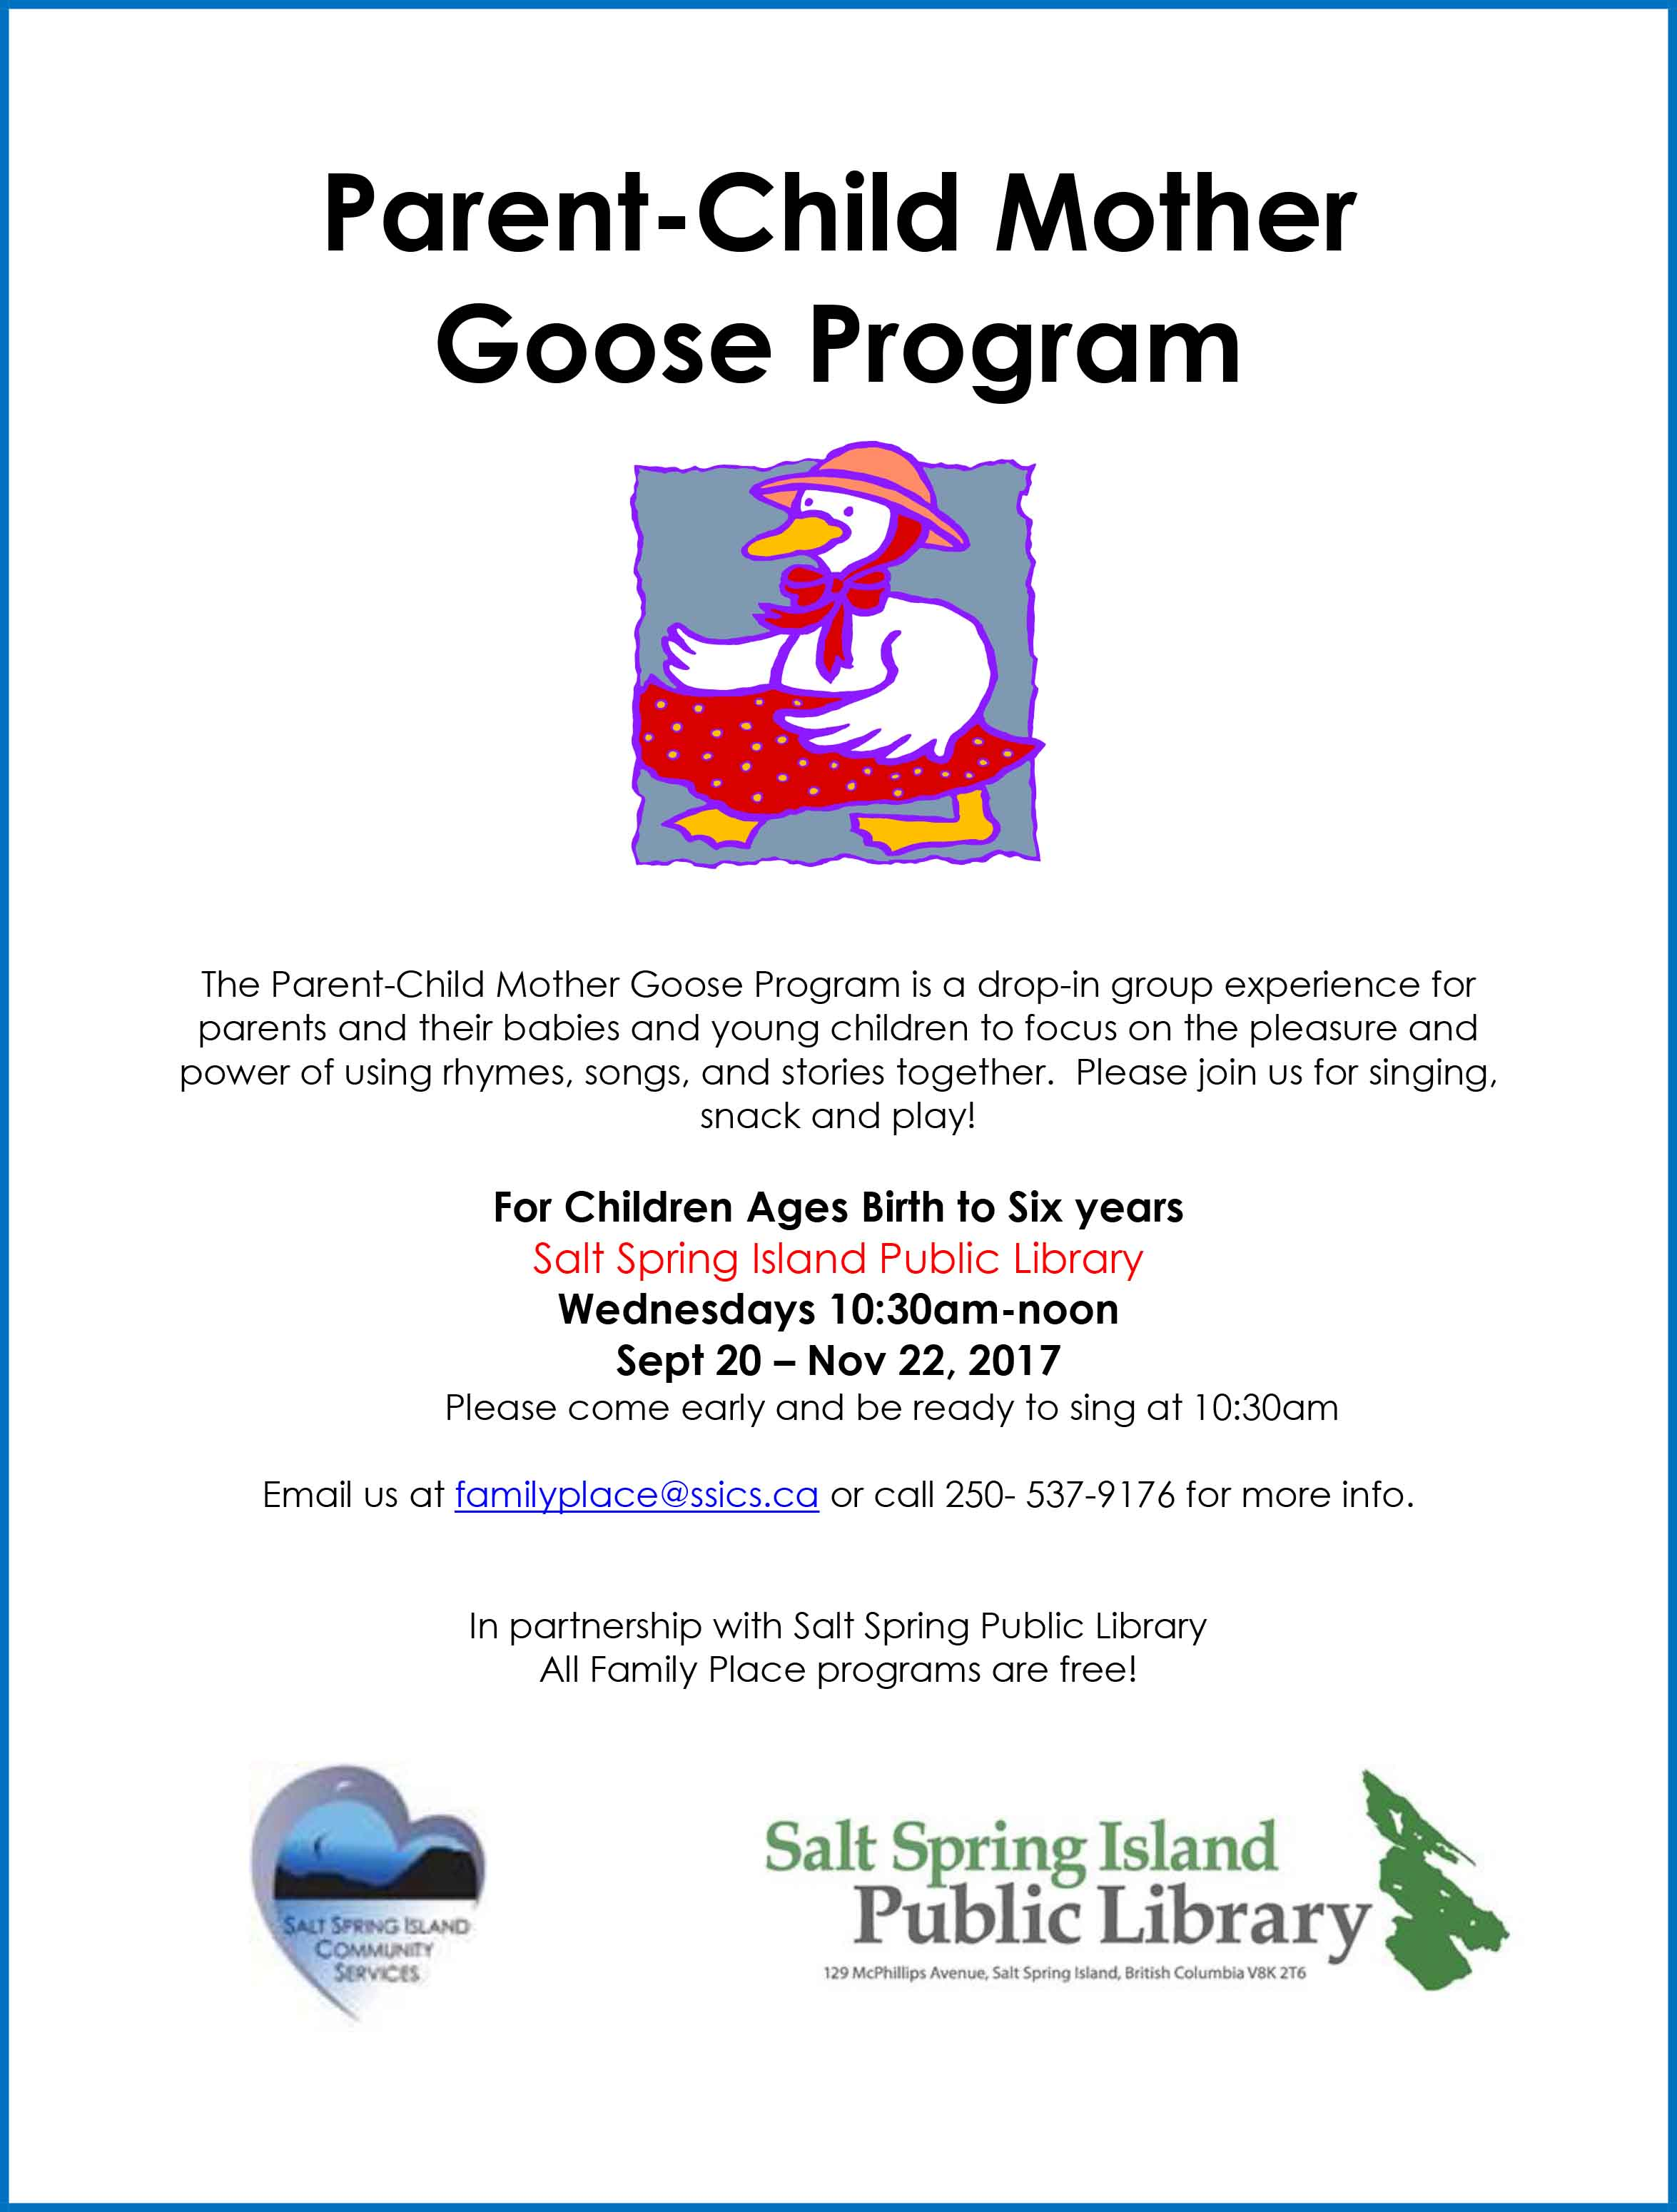 Parent-Child Mother Goose @ Library Program Room